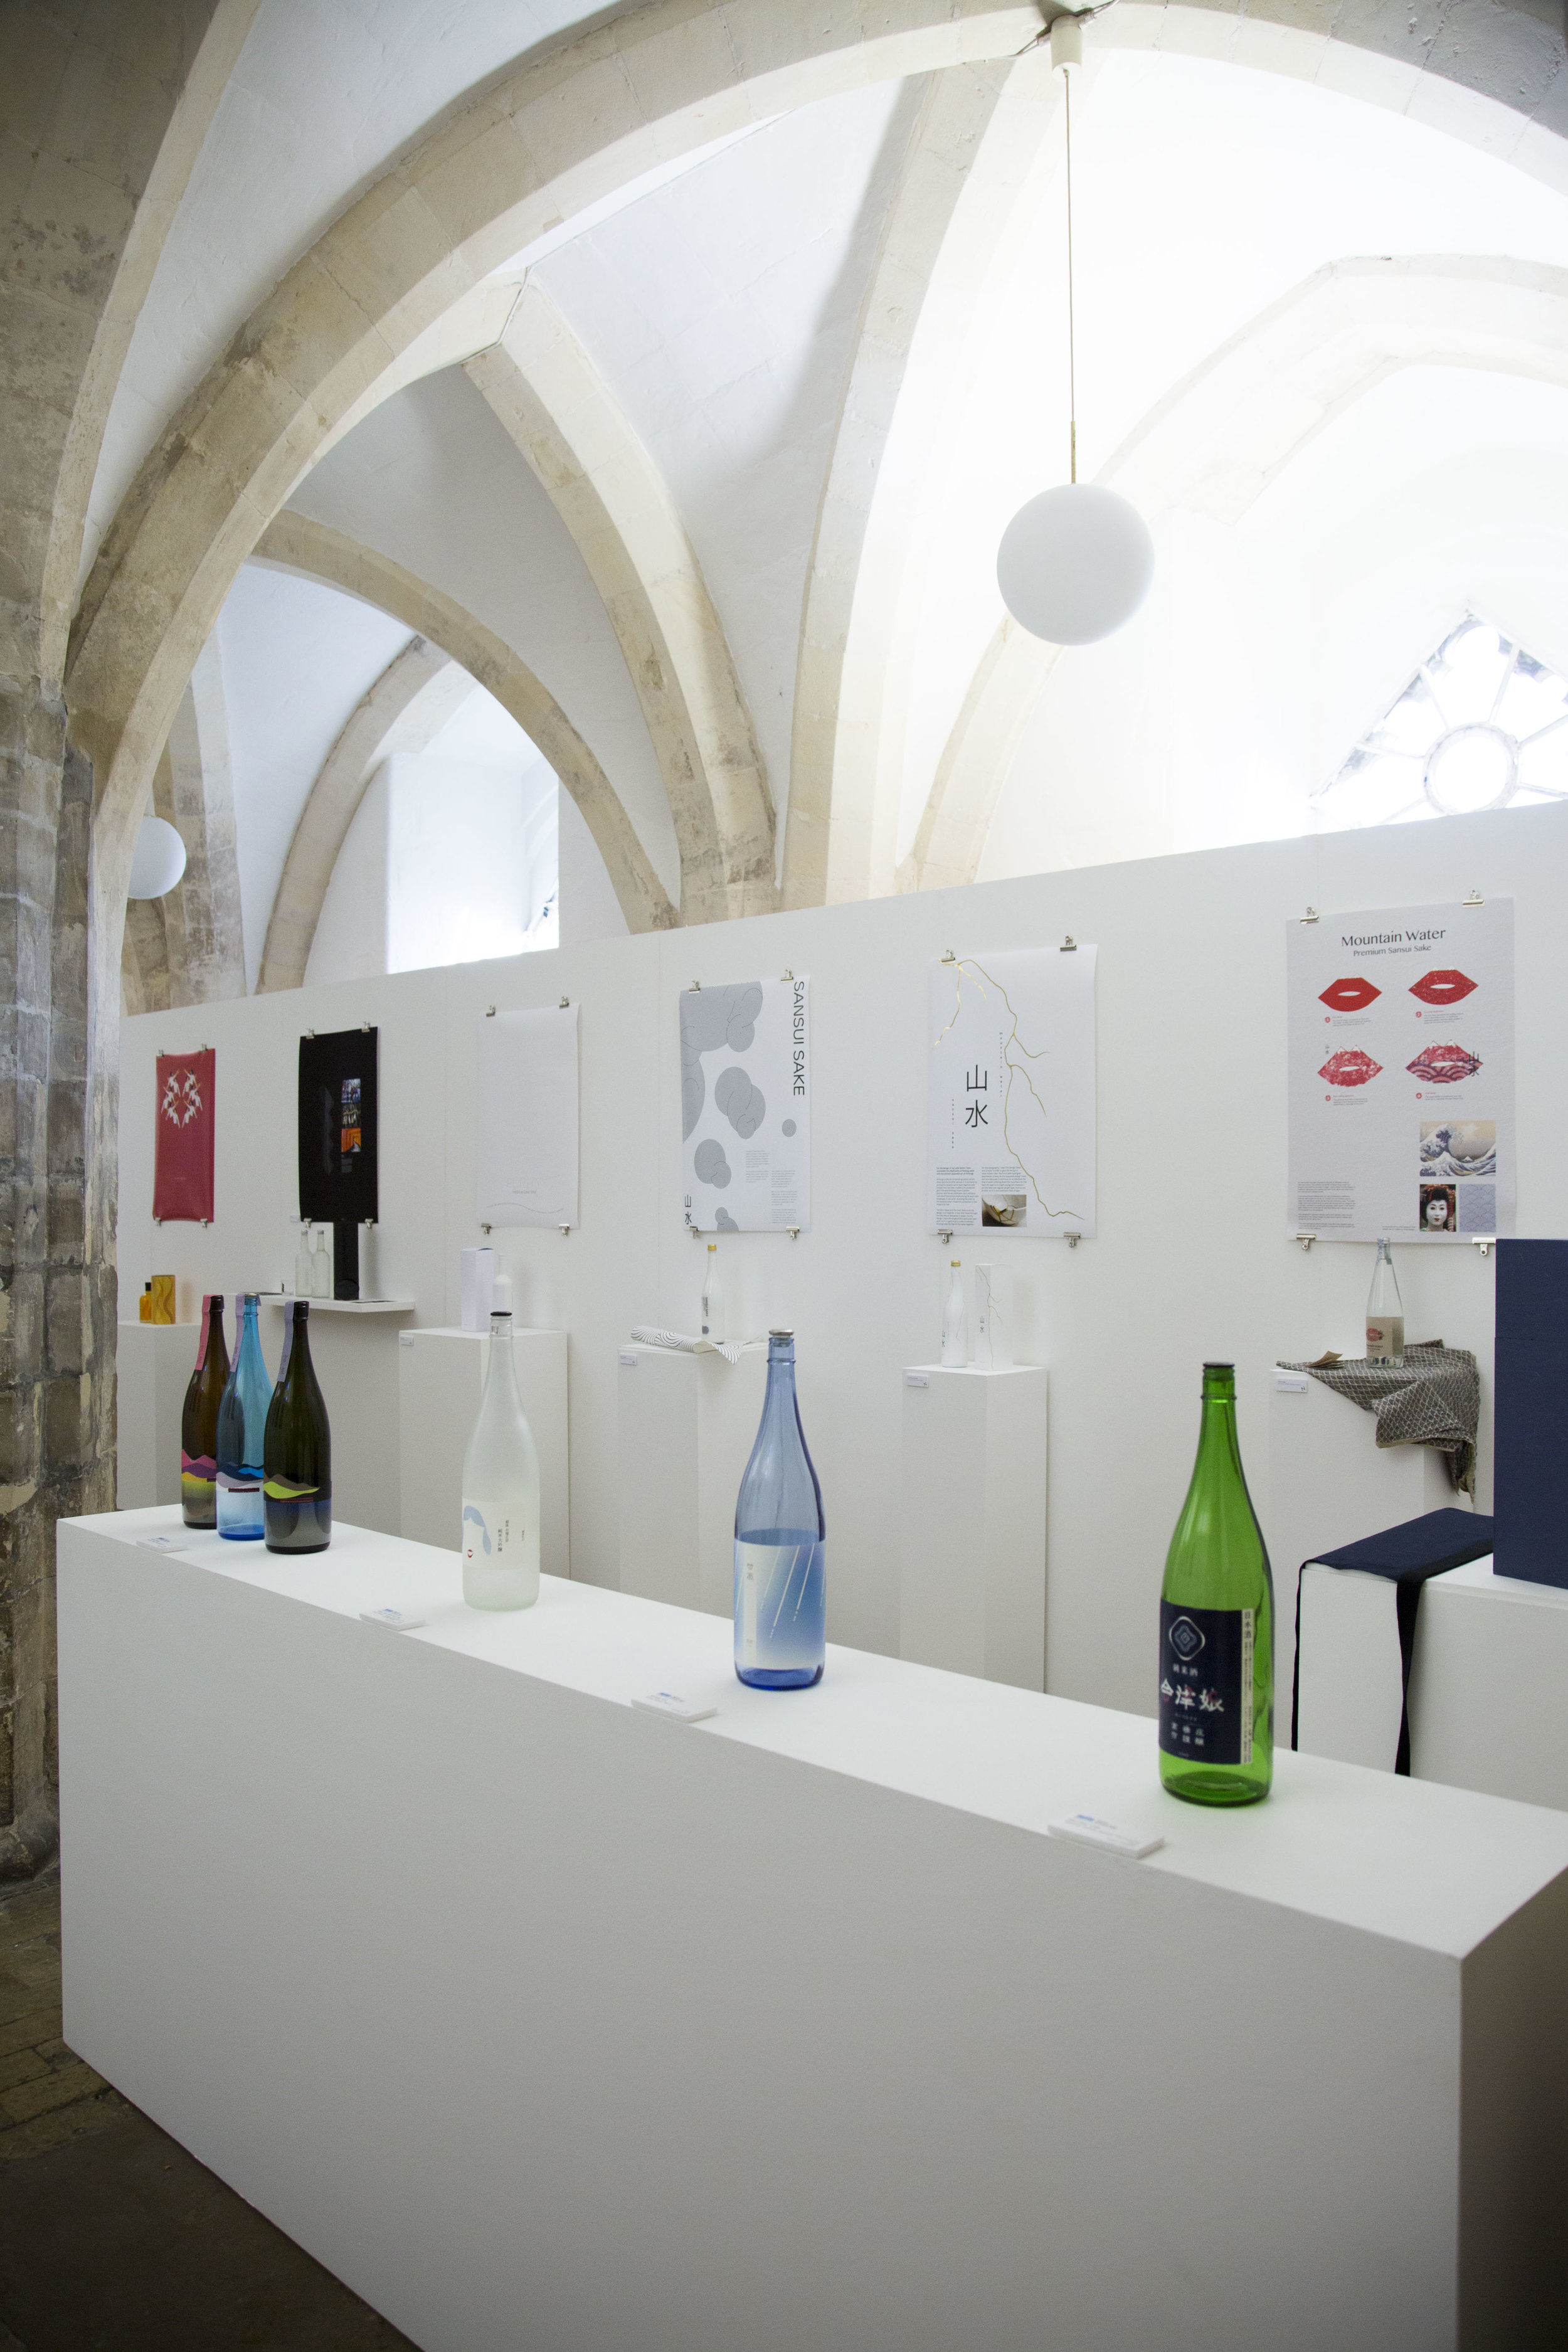 SAKE exhibition in the Crypt_HH061.JPG